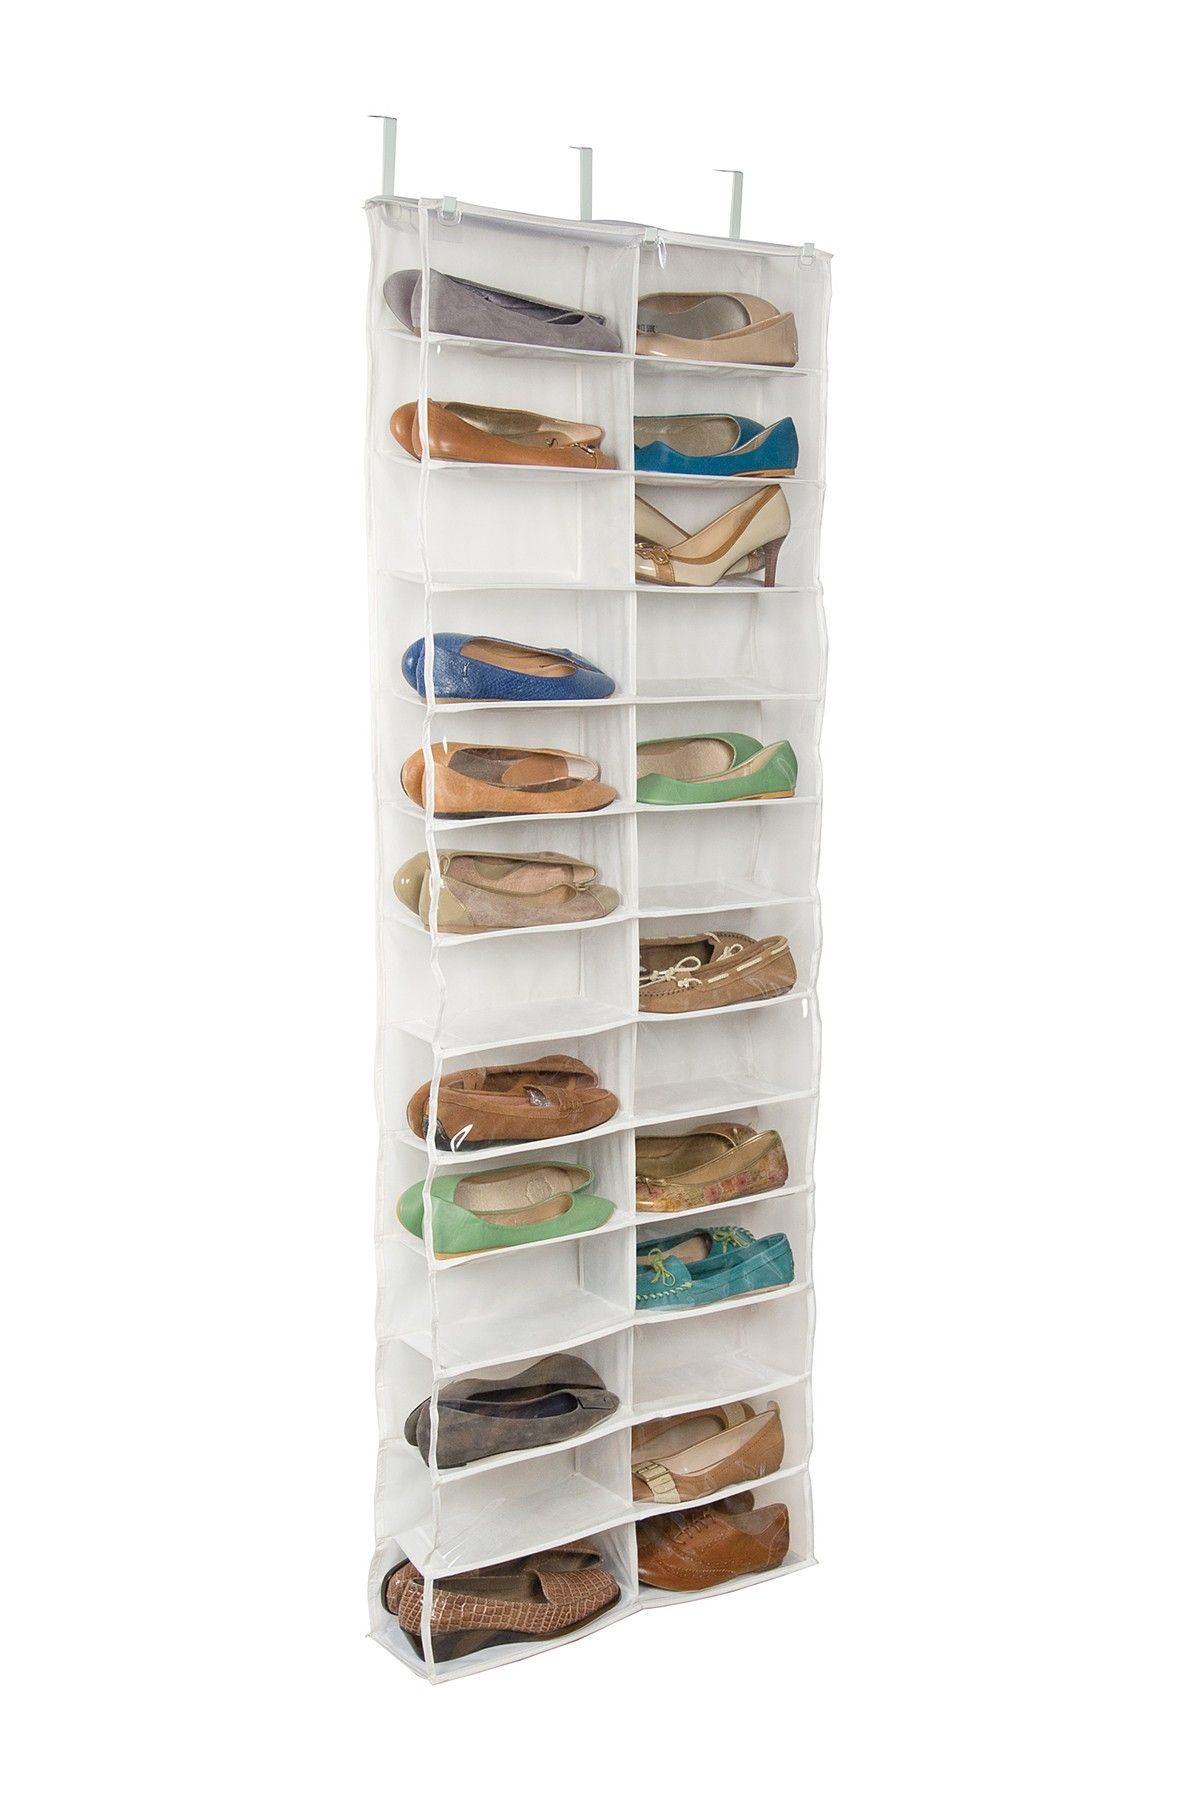 Richards Clear 26 Pocket Over The Door Organizer Door Shoe Organizer Over The Door Organizer Door Organizer